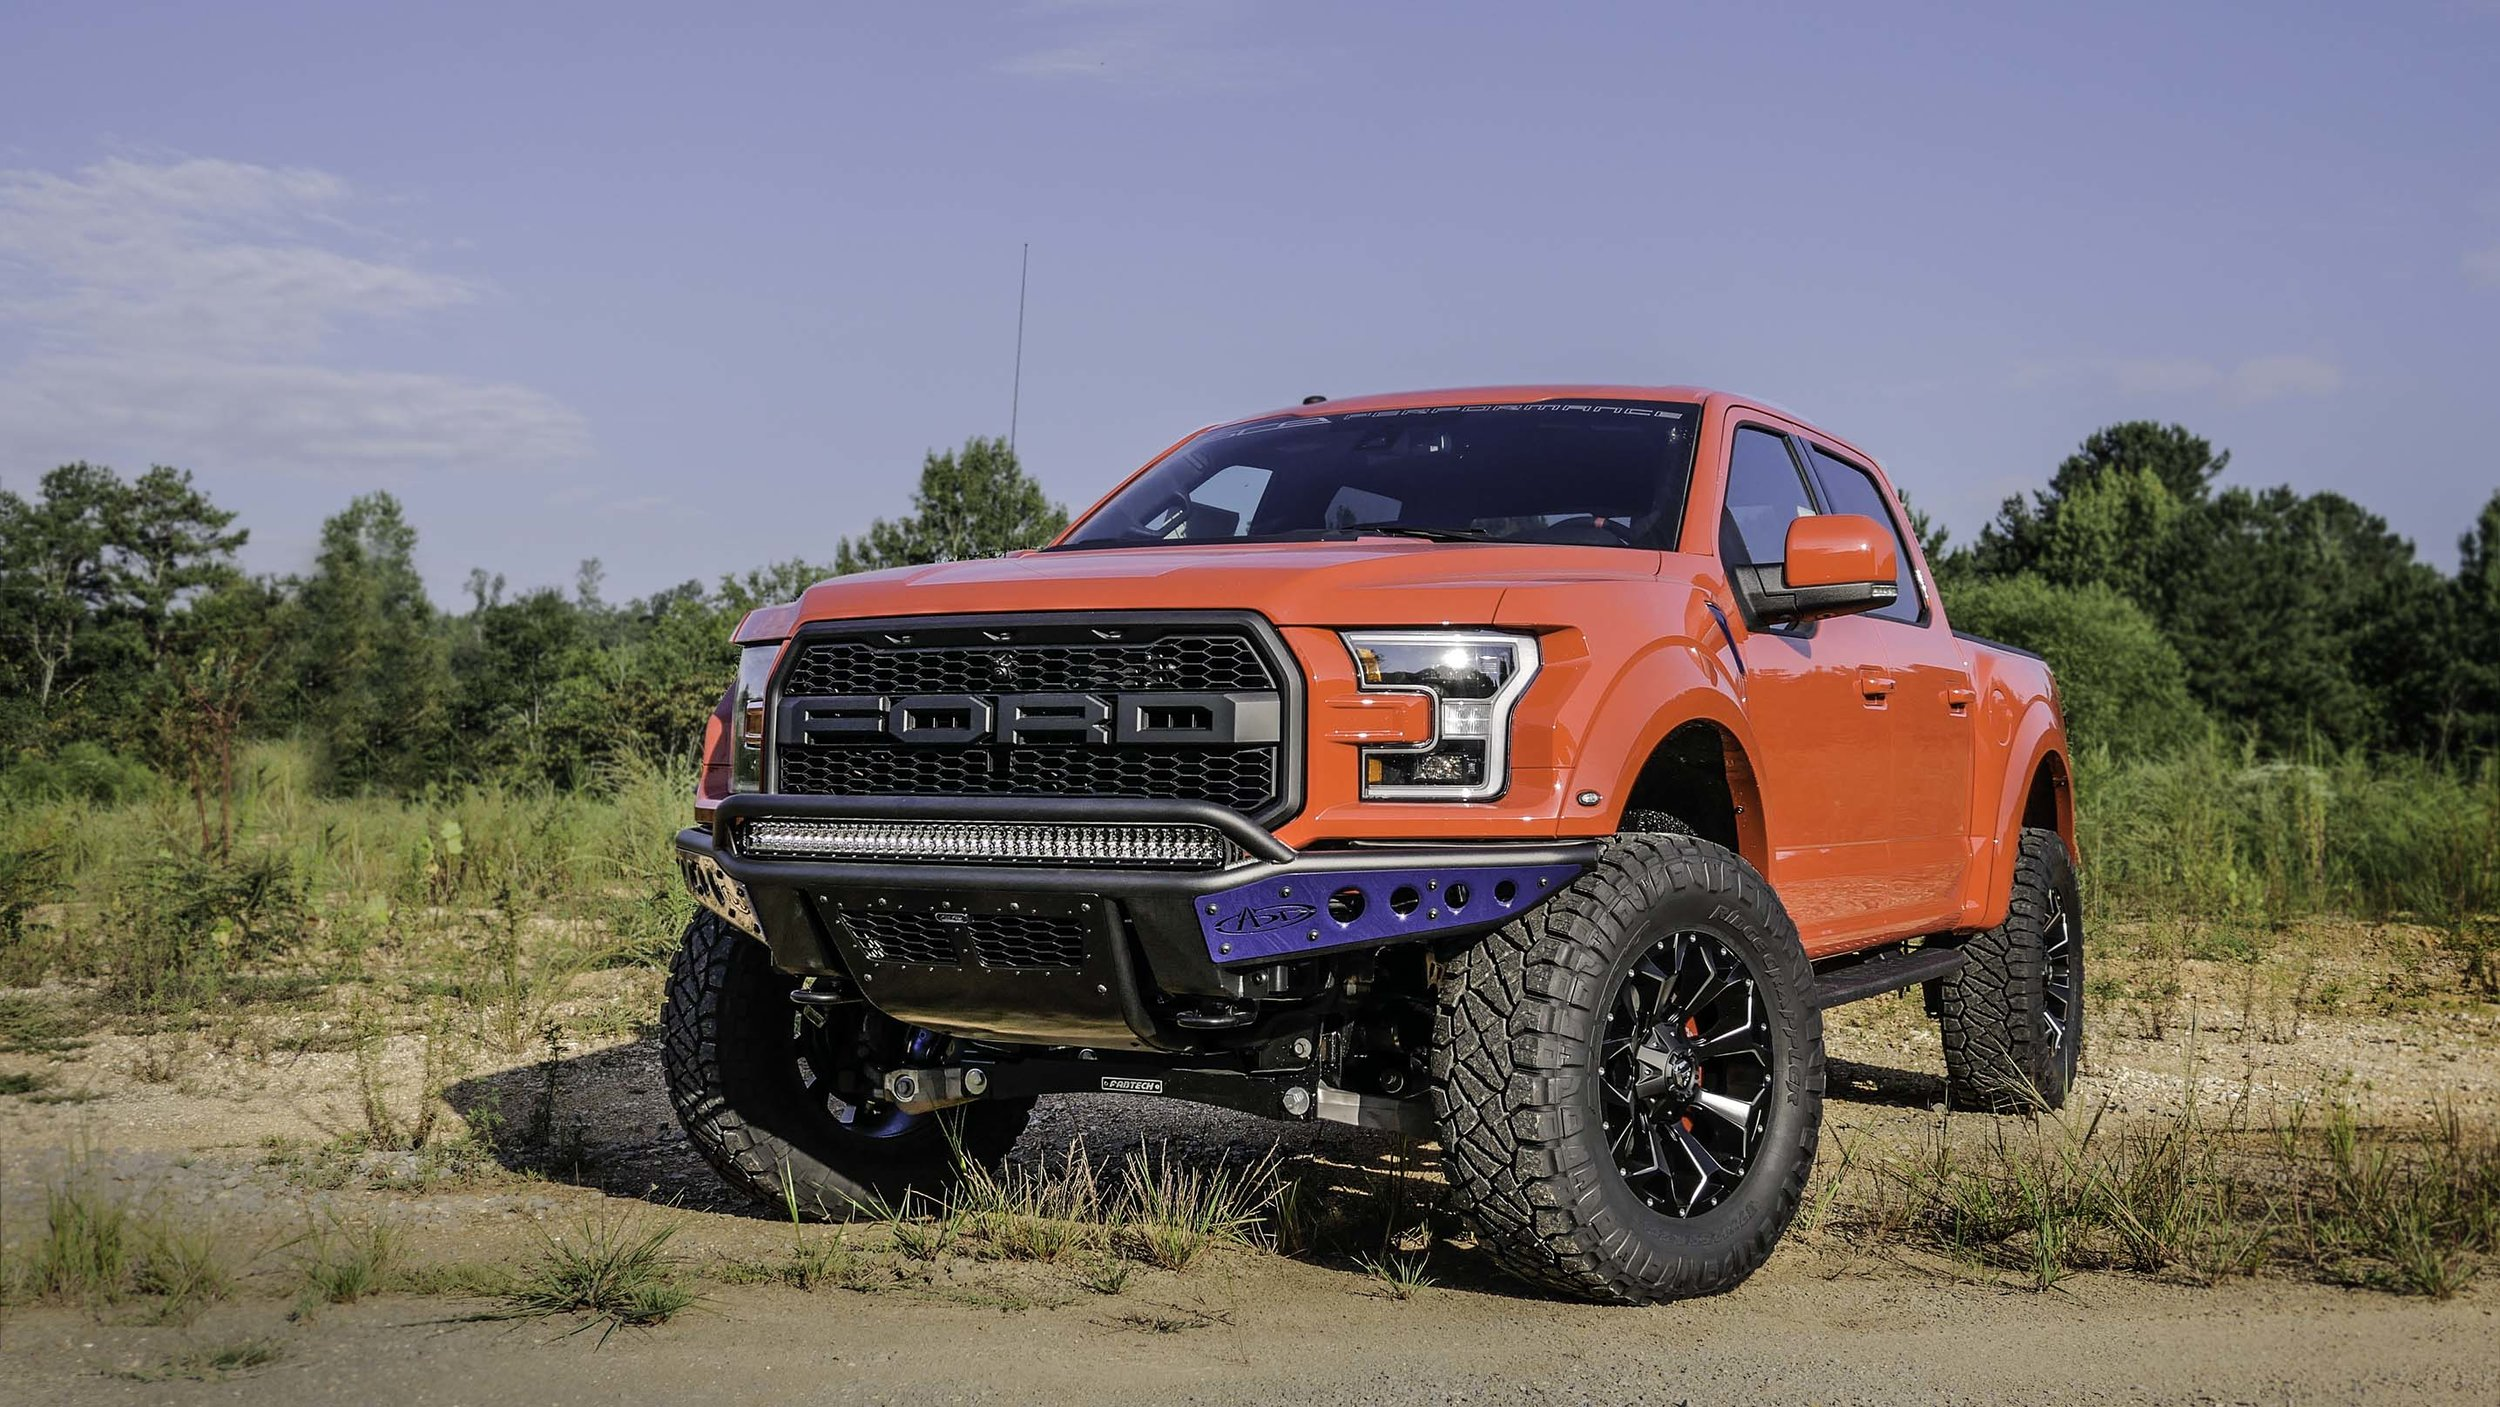 Ford Raptor Lifted Red with Blue Bumper Front Qtr.jpg